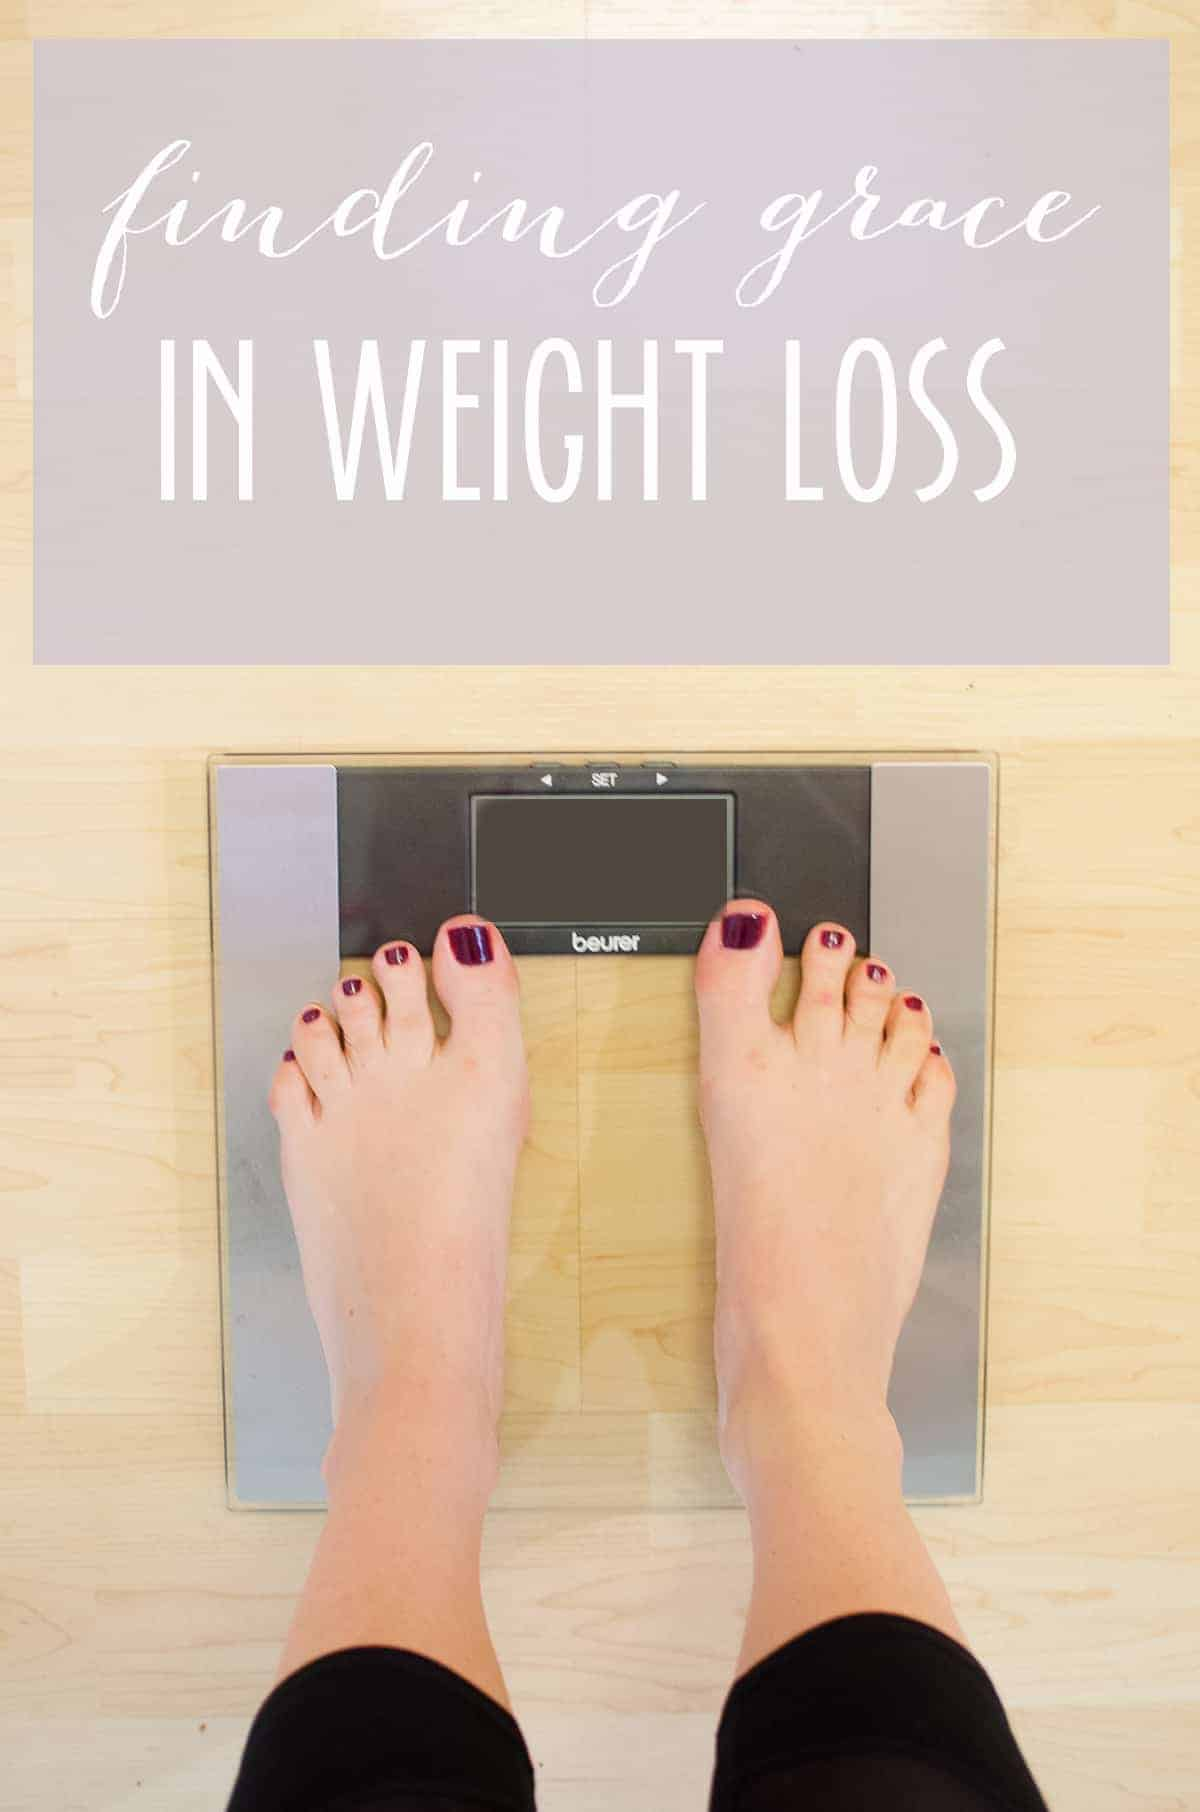 Finding Grace in Weight Loss. 4 proven strategies to finding compassion in the weight loss journey. A must-read for anyone with a long-term goal!